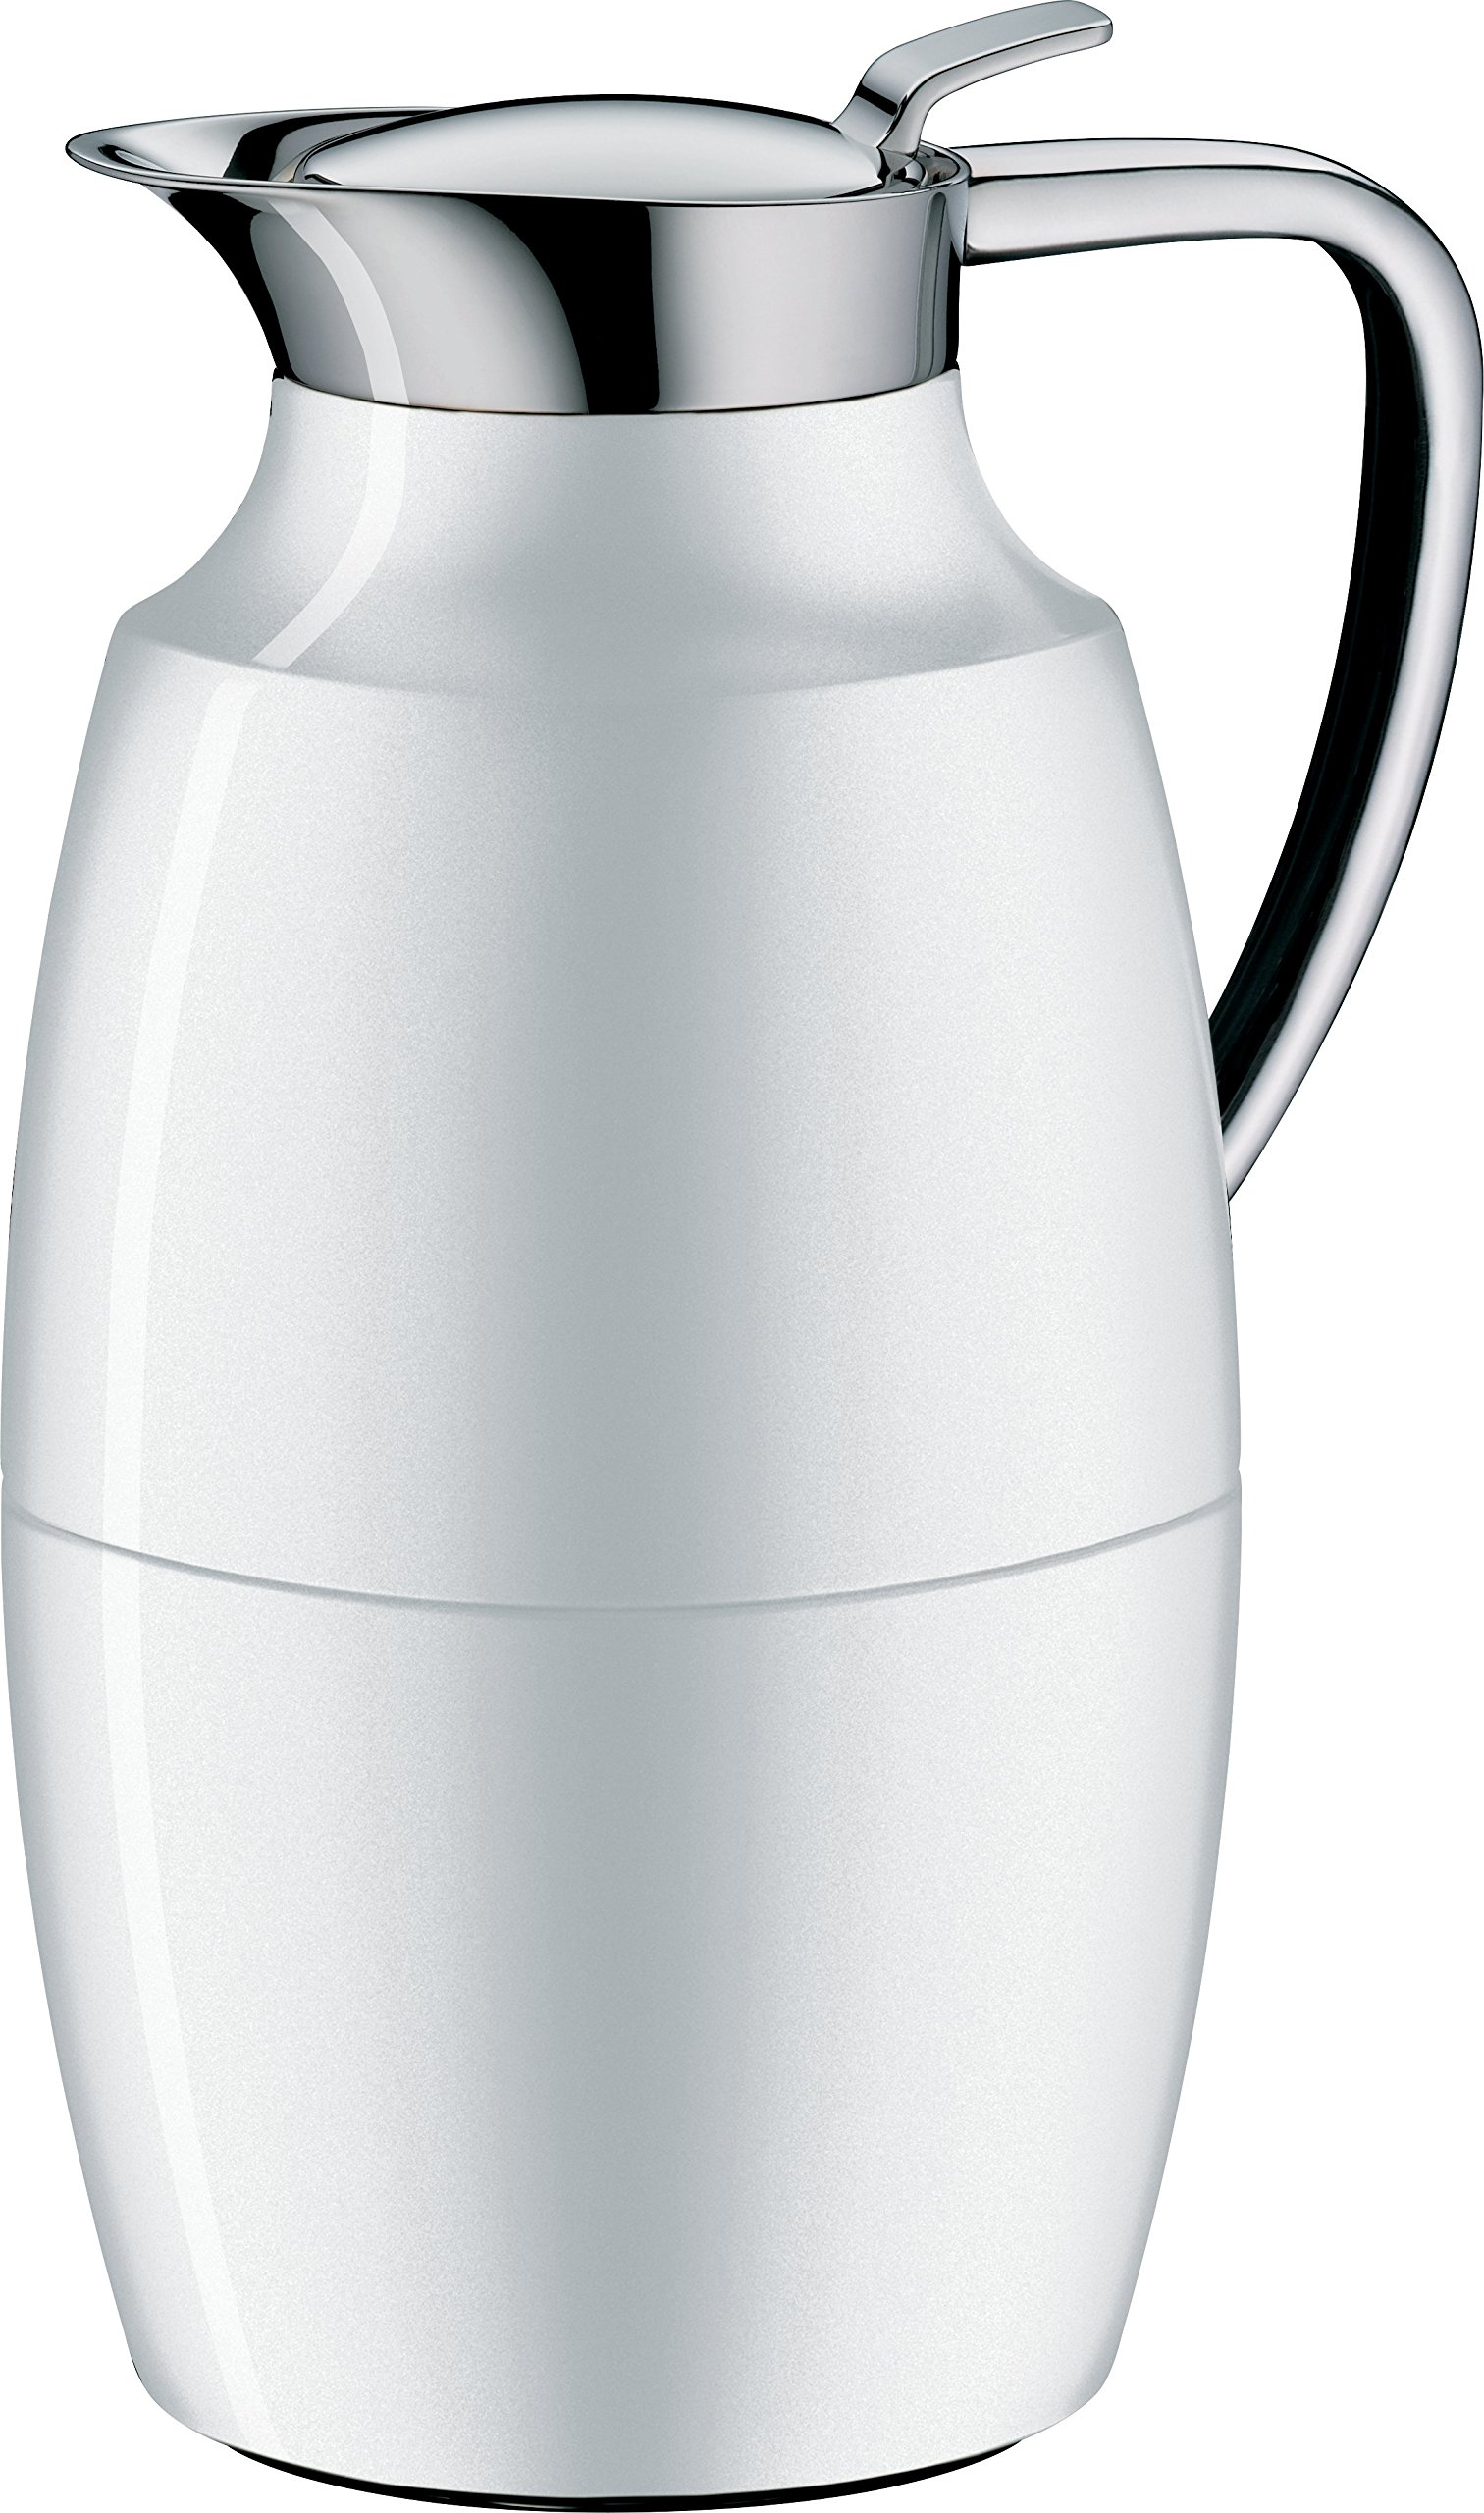 alfi Pallas Glass Vacuum Lacquered Metal Thermal Carafe for Hot and Cold Beverages, 1.0 L, Polar White